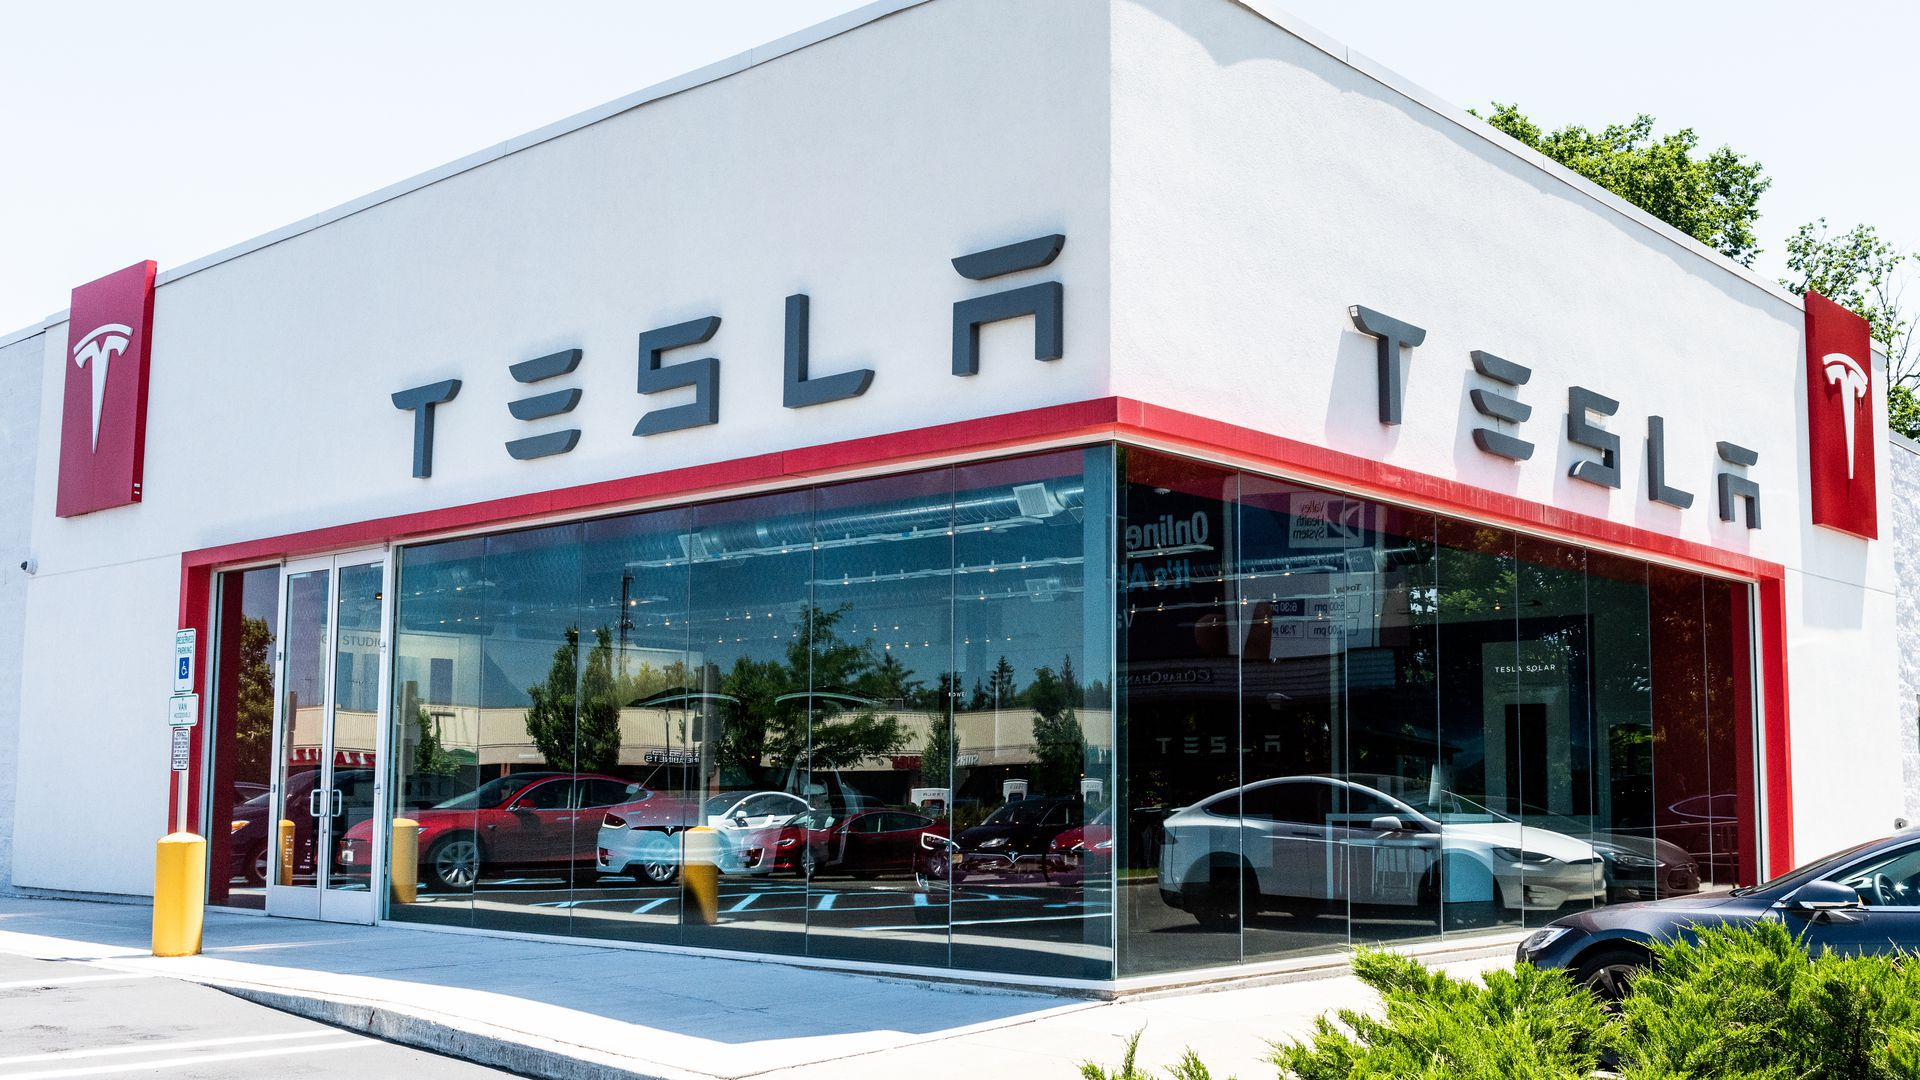 Photo of a Tesla store in New Jersey